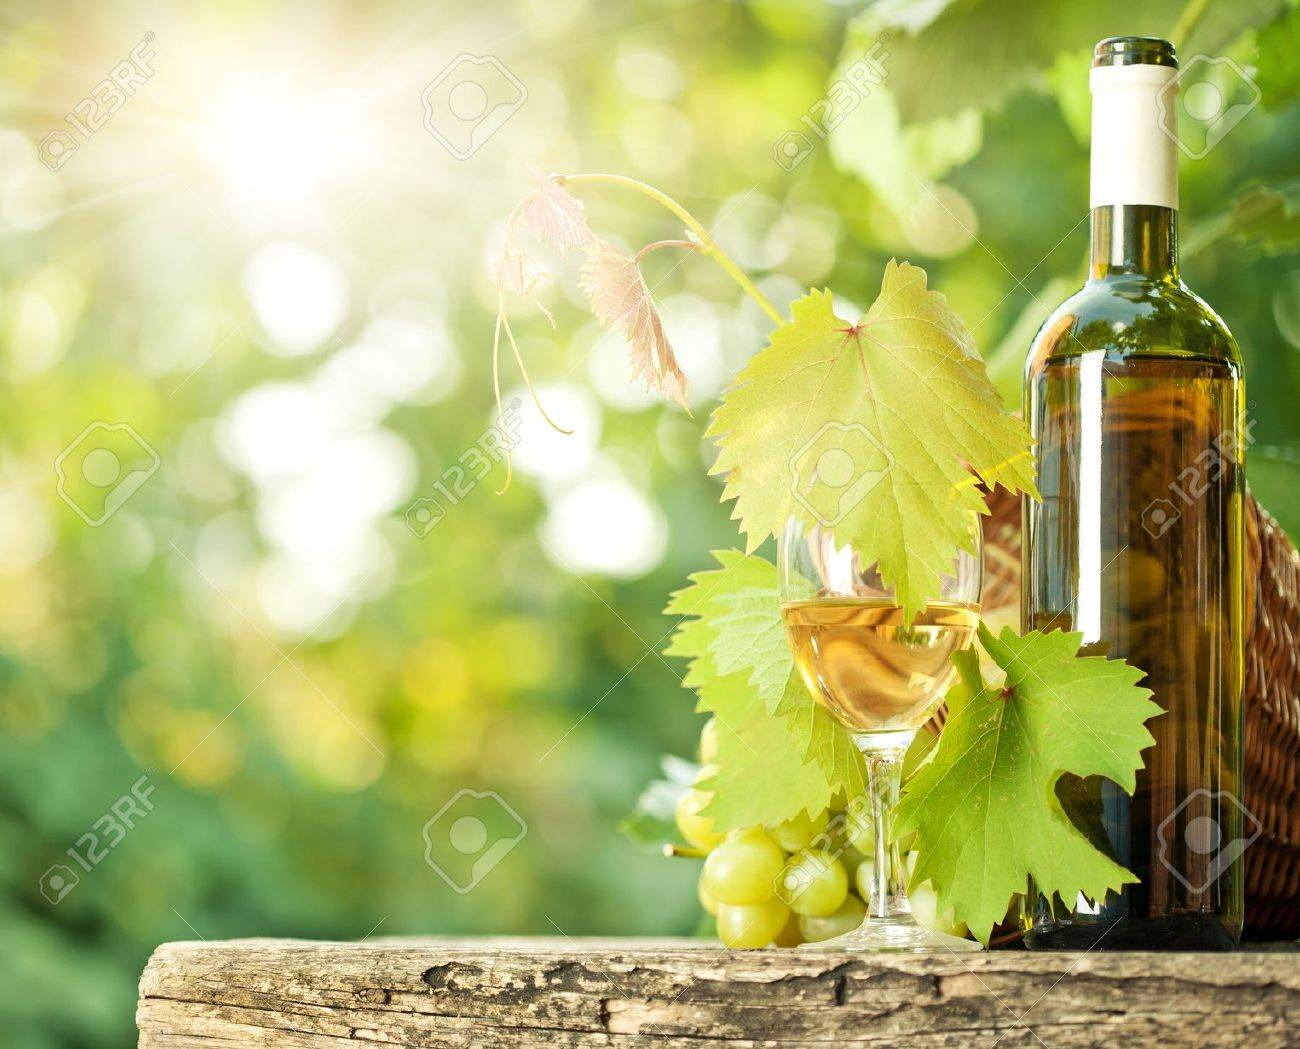 White wine bottle, glass, young vine and bunch of grapes against green spring background Stock Photo - 11870359